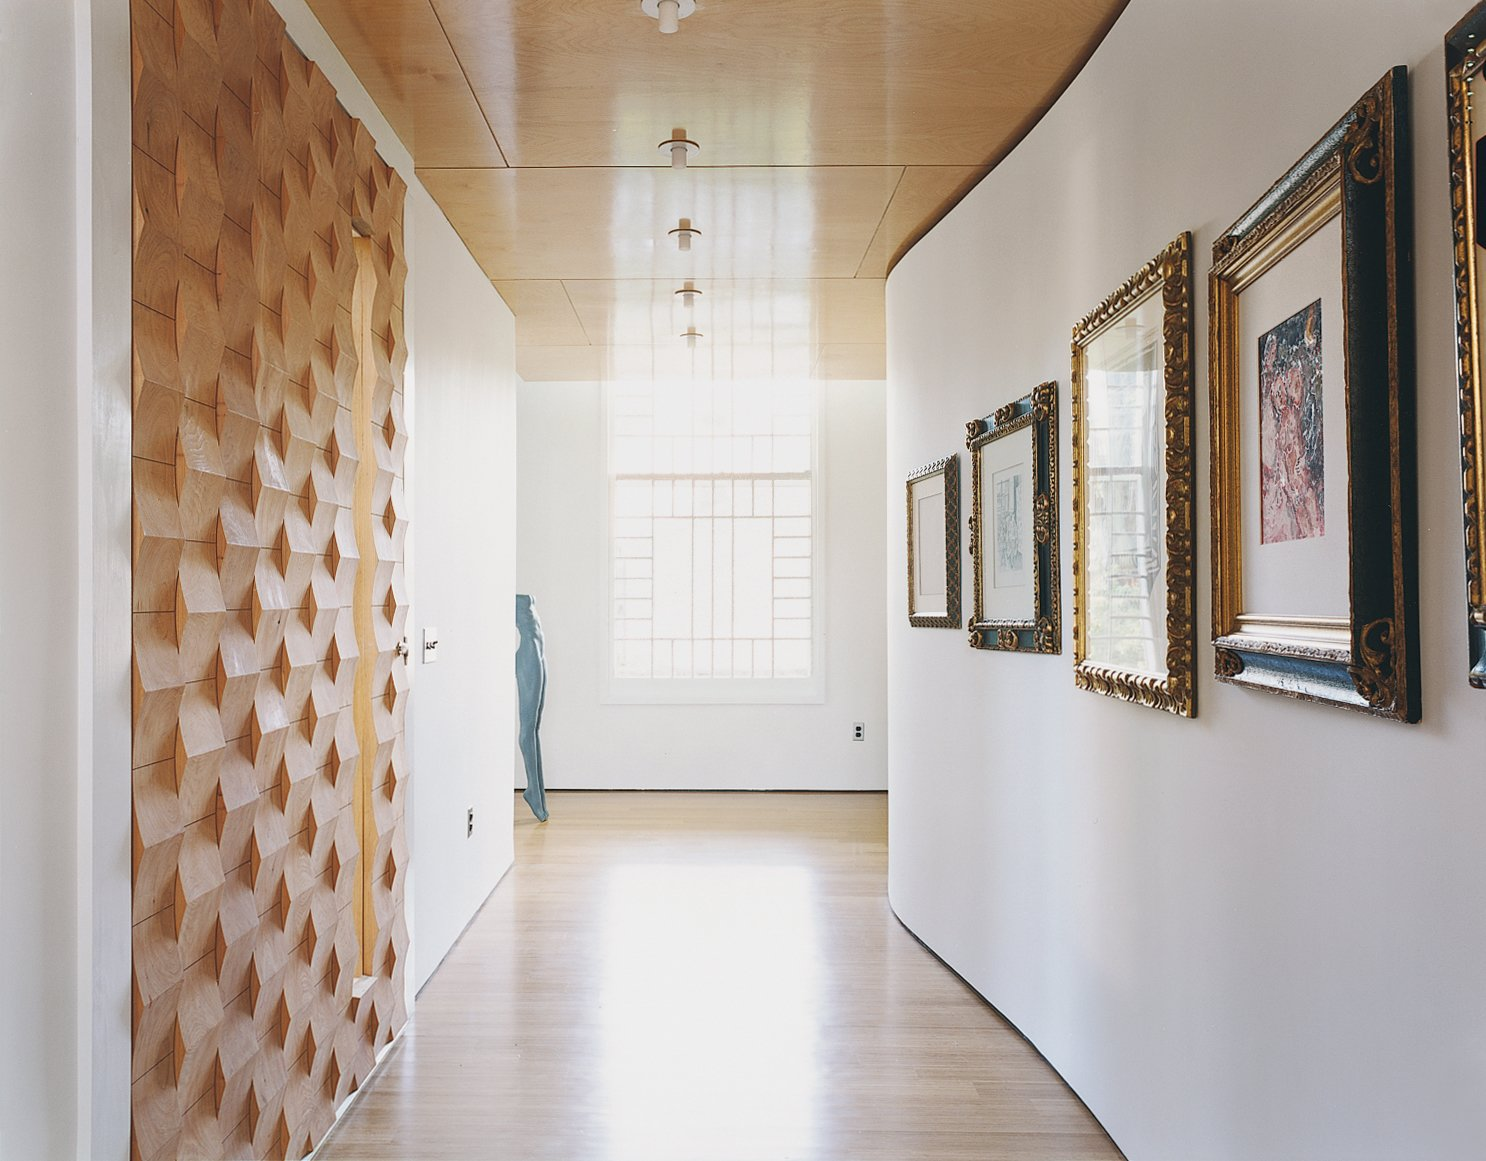 The house is as much a work of art as a showcase for it. The Suarezes are catholic in their tastes: They buy for love not investment, their collection a mix of high and low. In the foyer, prints and drawings acquired over the course of their world travels hang along the attenuated S-curve of the wall opposite the front door.  Photo 3 of 10 in At Home in a Modern Church